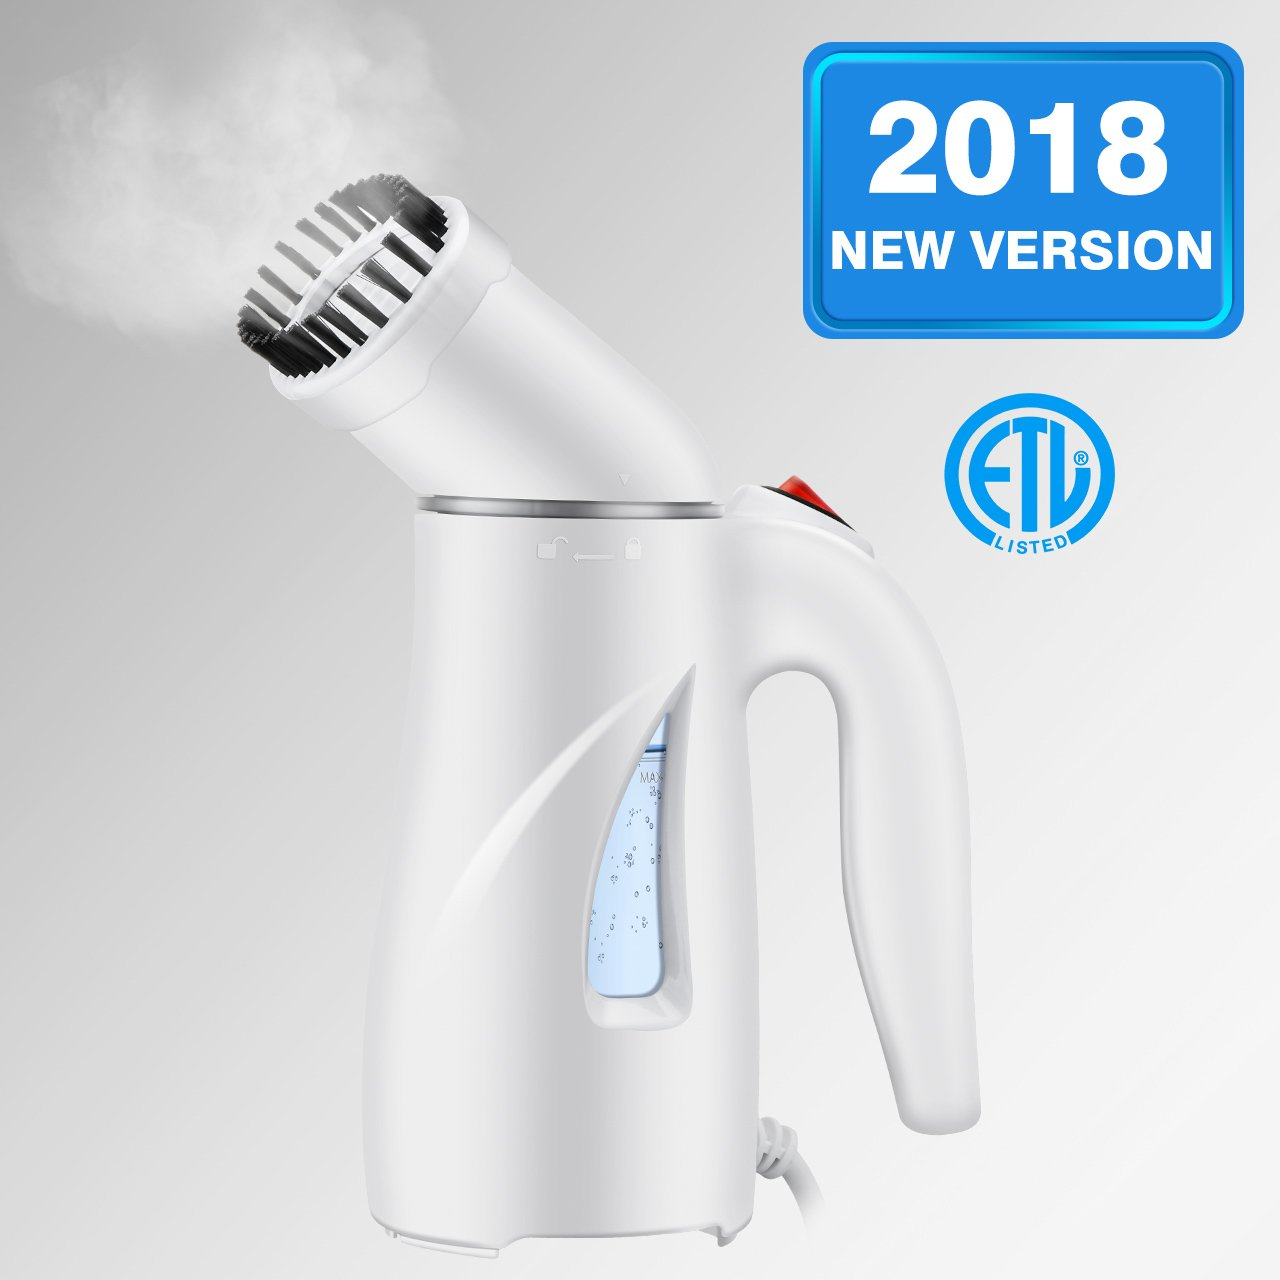 Homitt Handheld Clothes Steamer, Portable Travel Steamer for Clothes Wrinkle Remover/Sanitize/Sterilize/Refresh with Auto Shut-Off Fast Heat-up Function Safe Use for Travel,Office, School and Home